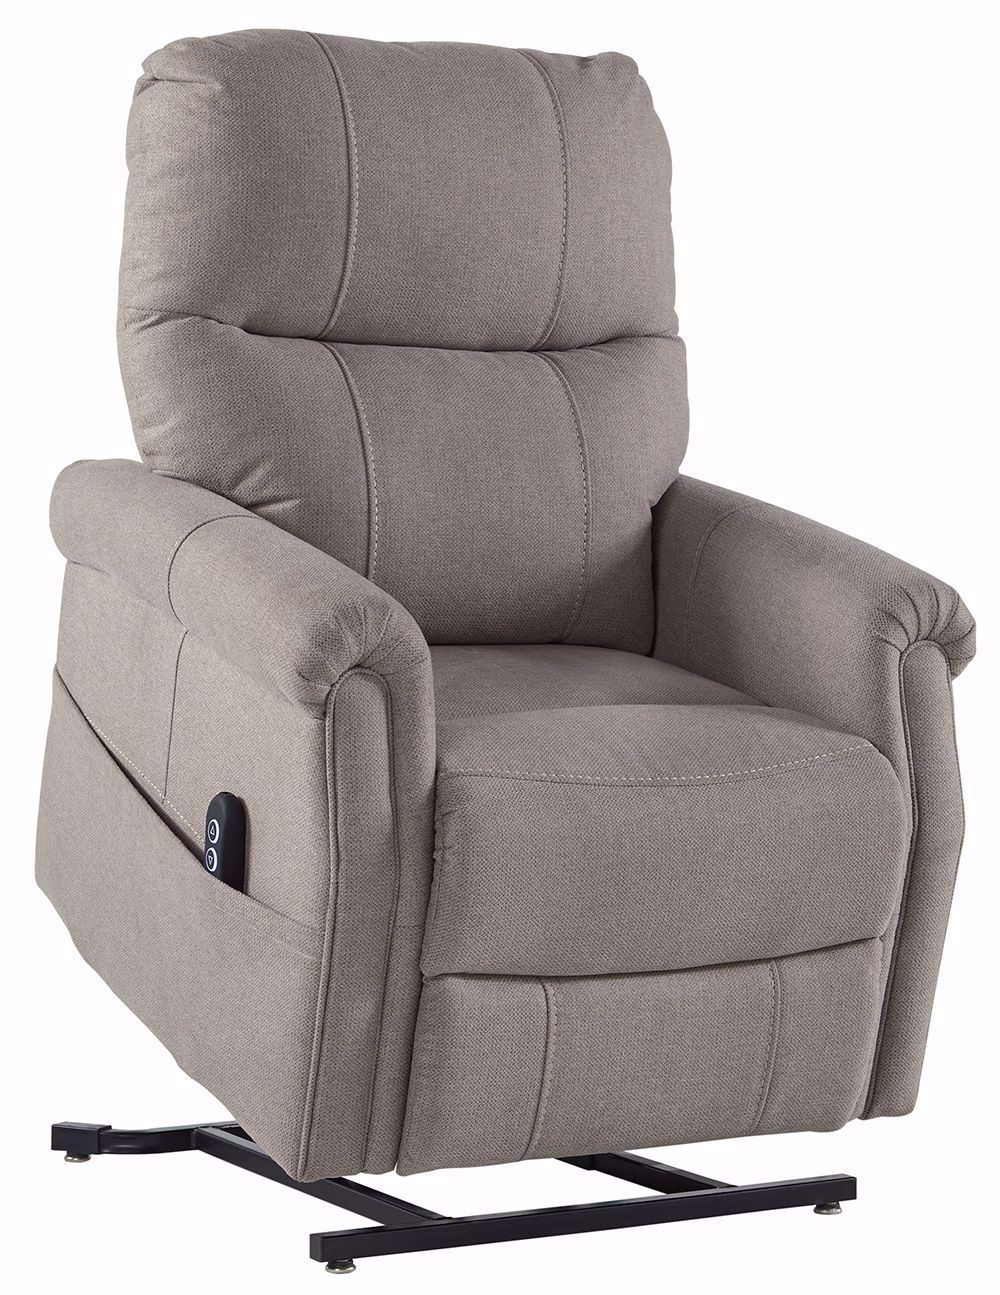 Picture of Markridge Gray Power Lift Recliner